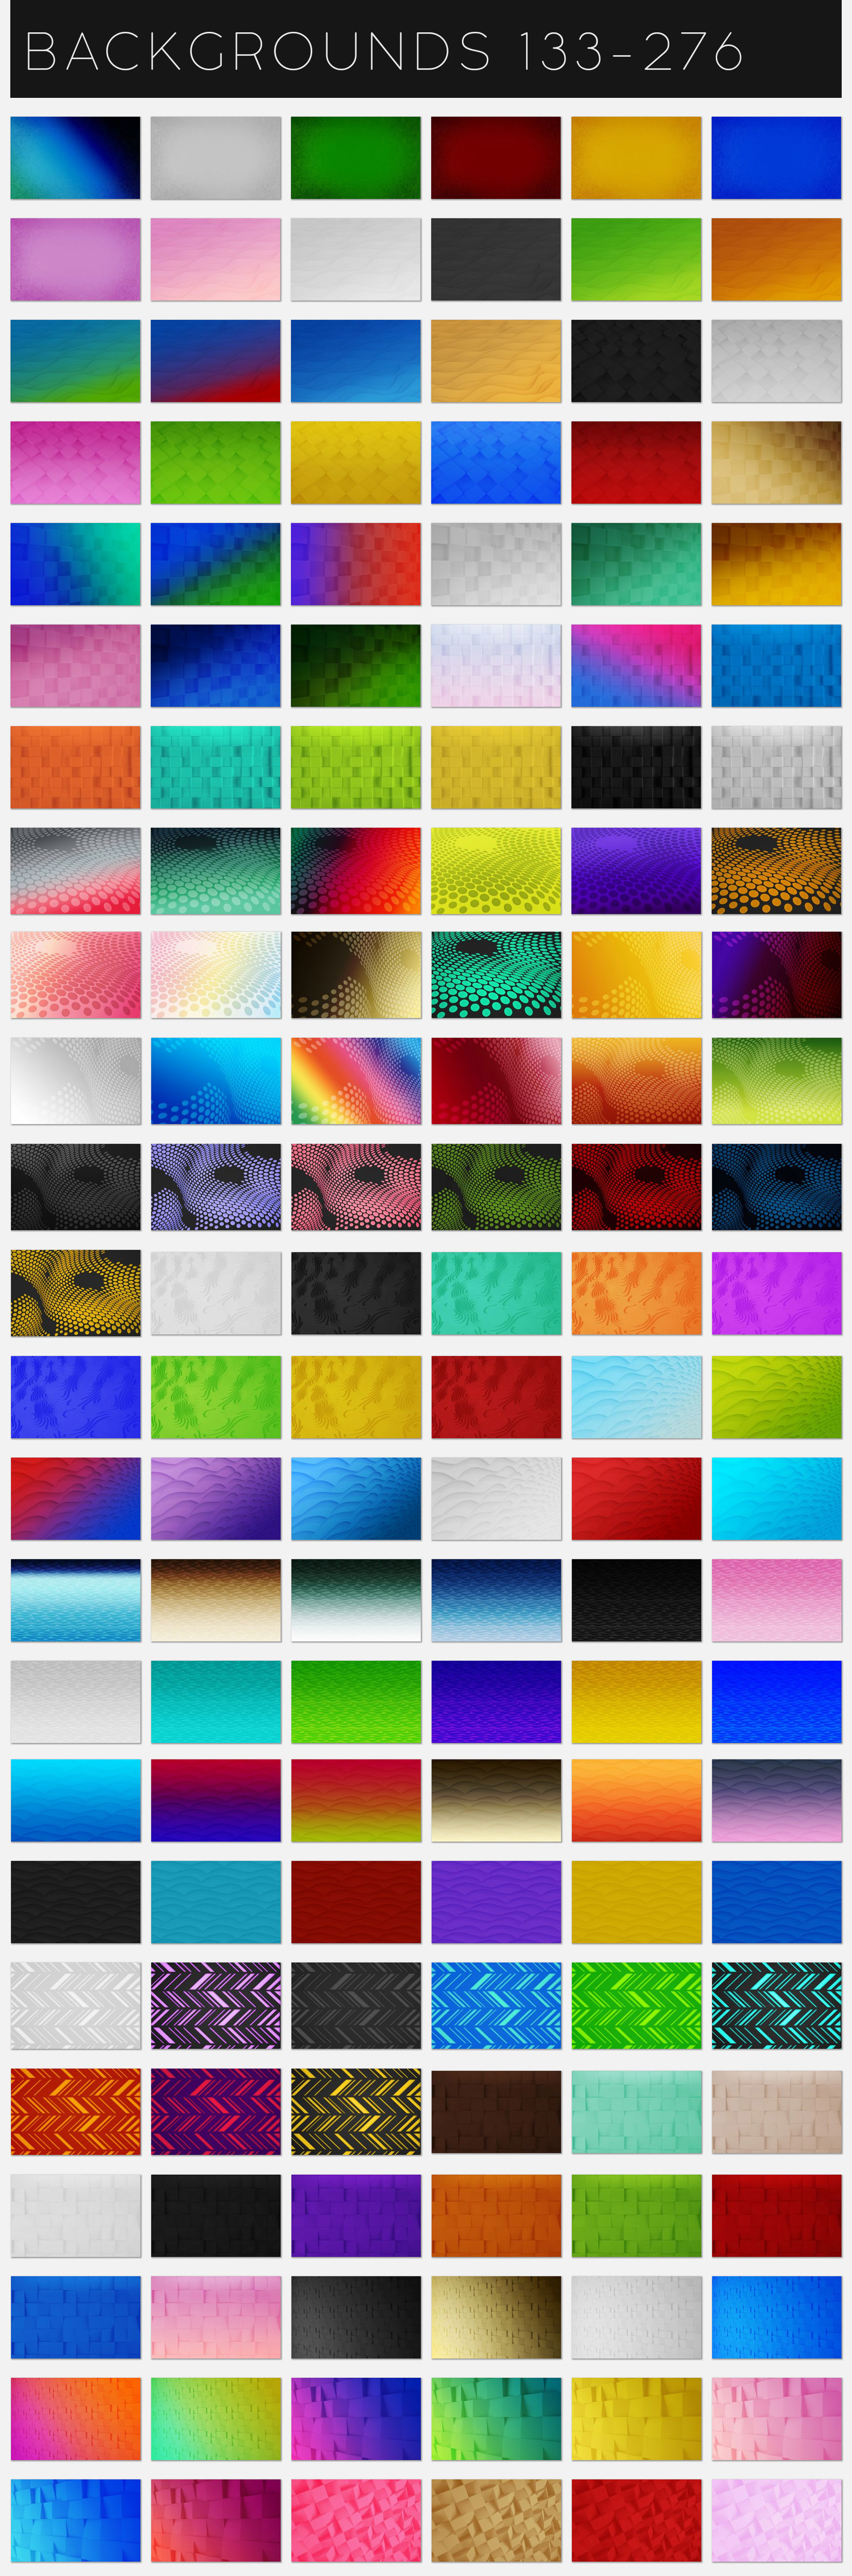 Abstract Backgrounds Volume 1 example image 13